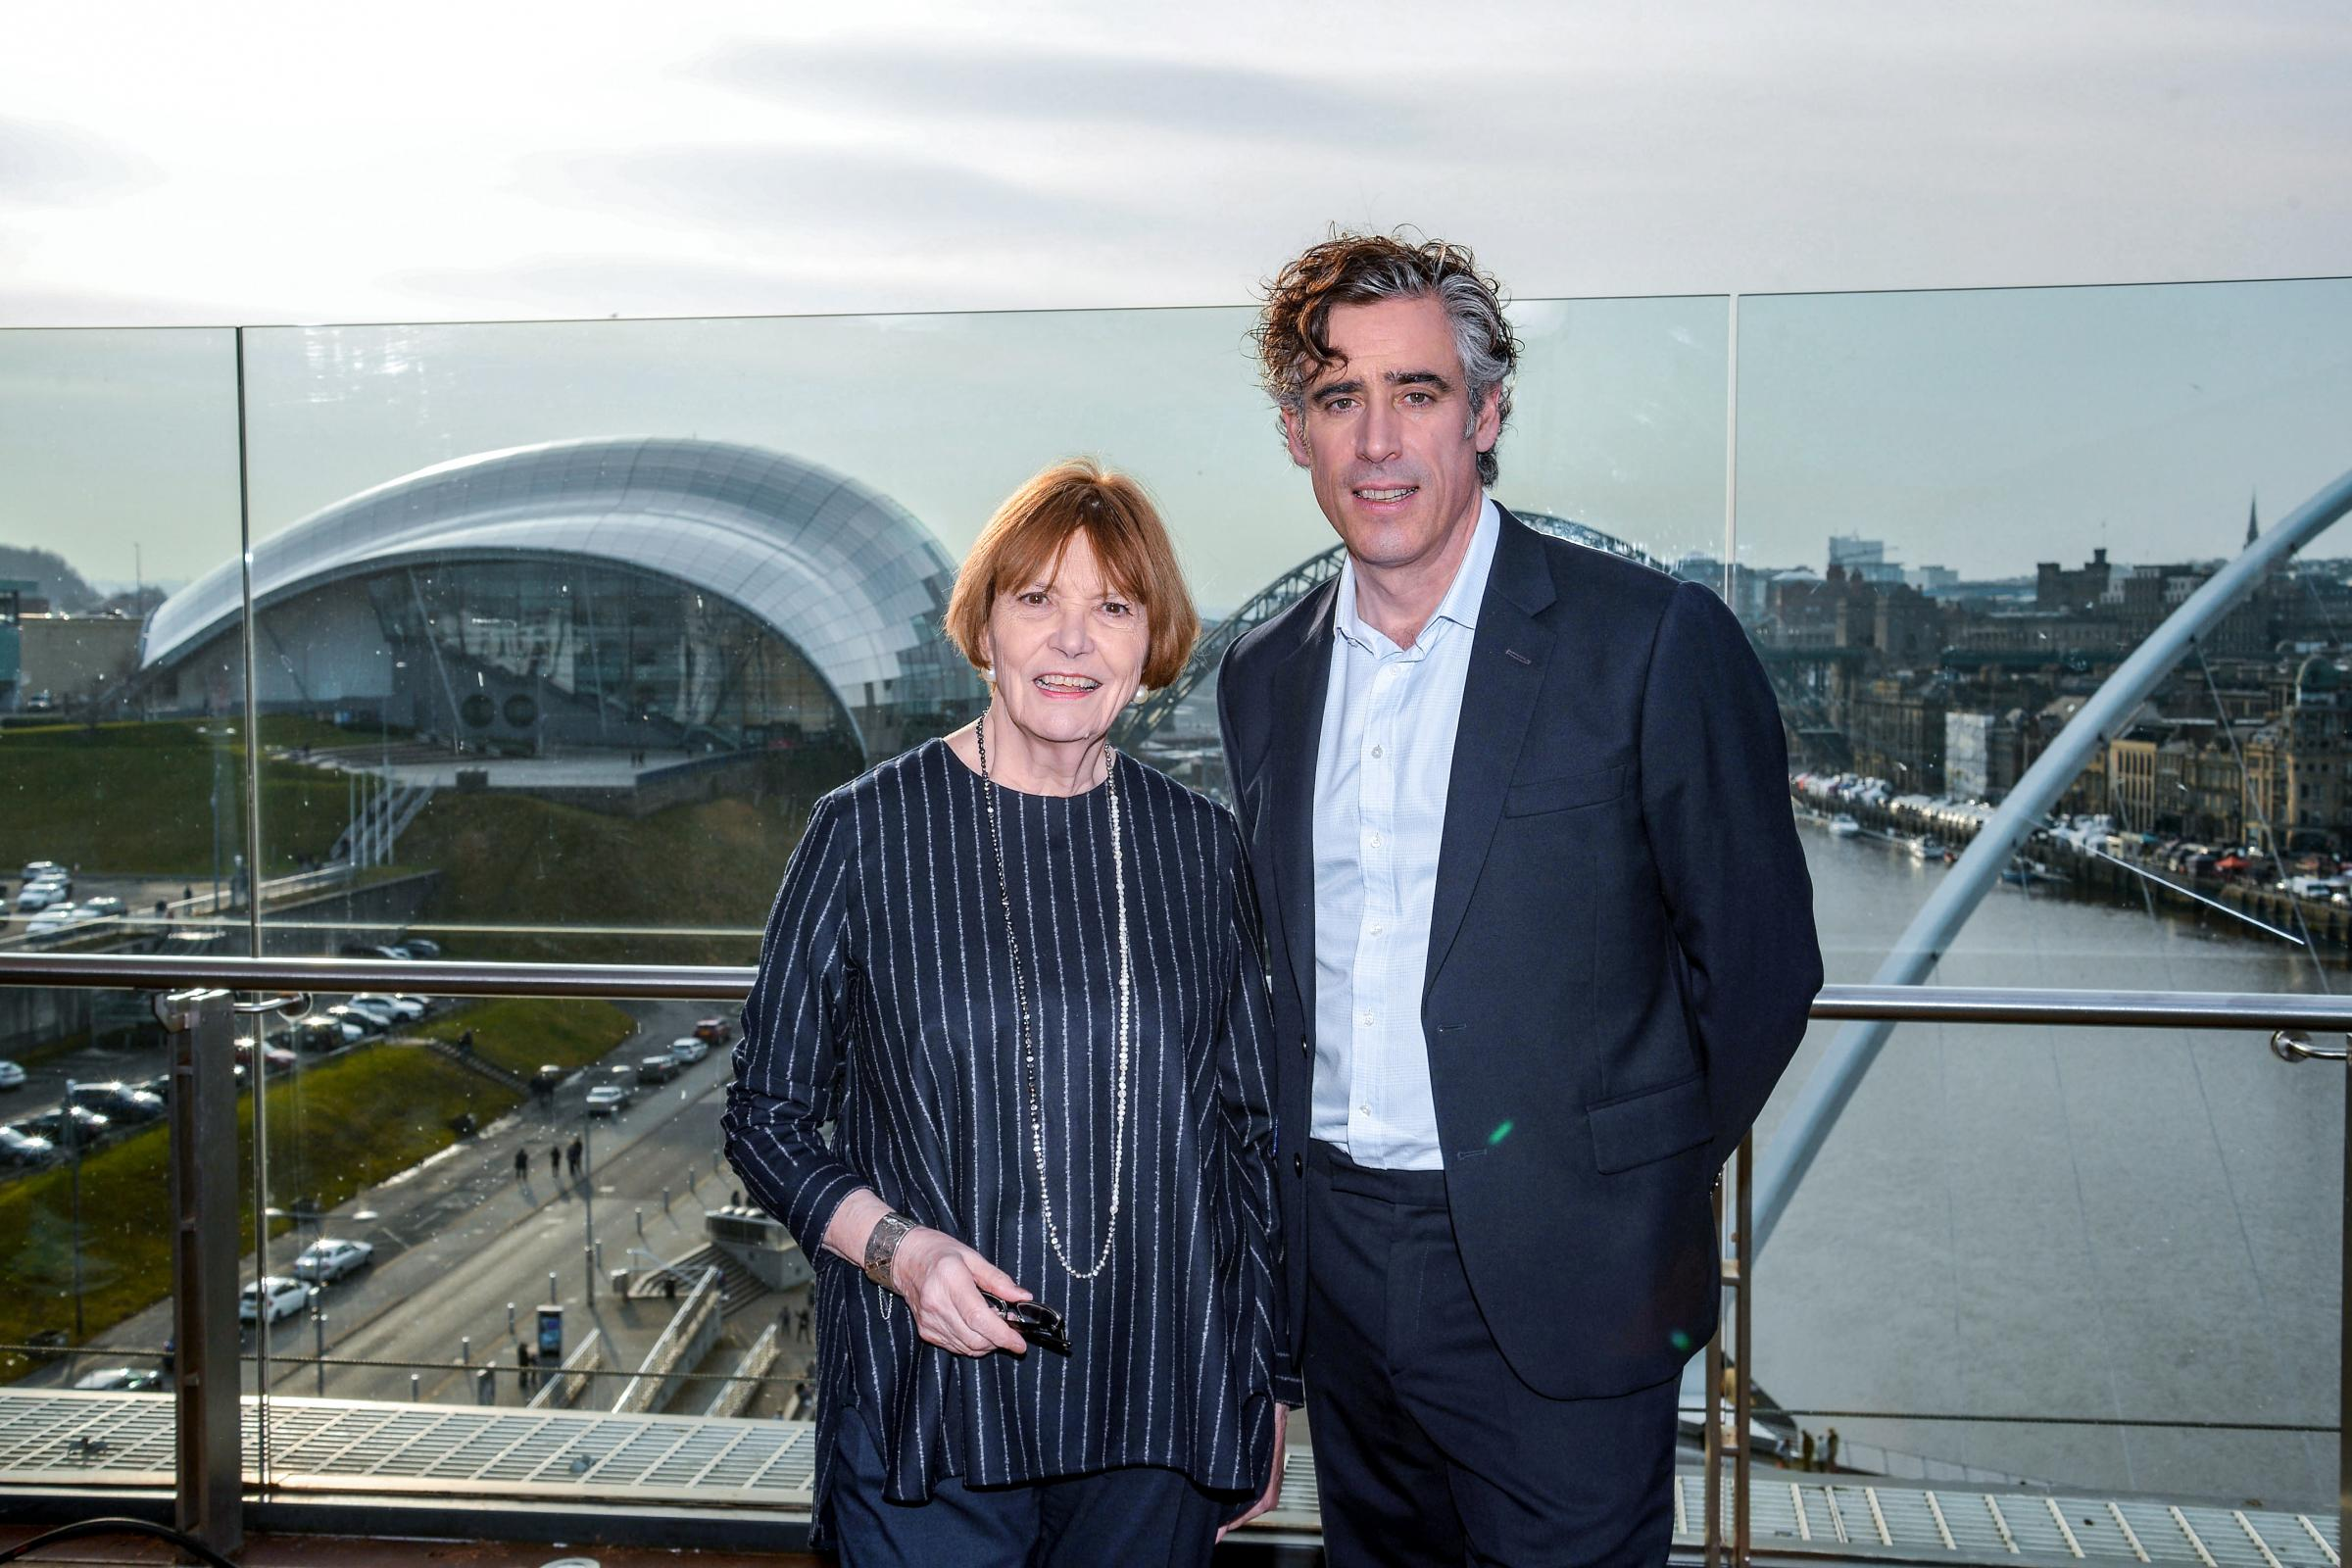 Joan Bakewell and Stephen Mangan